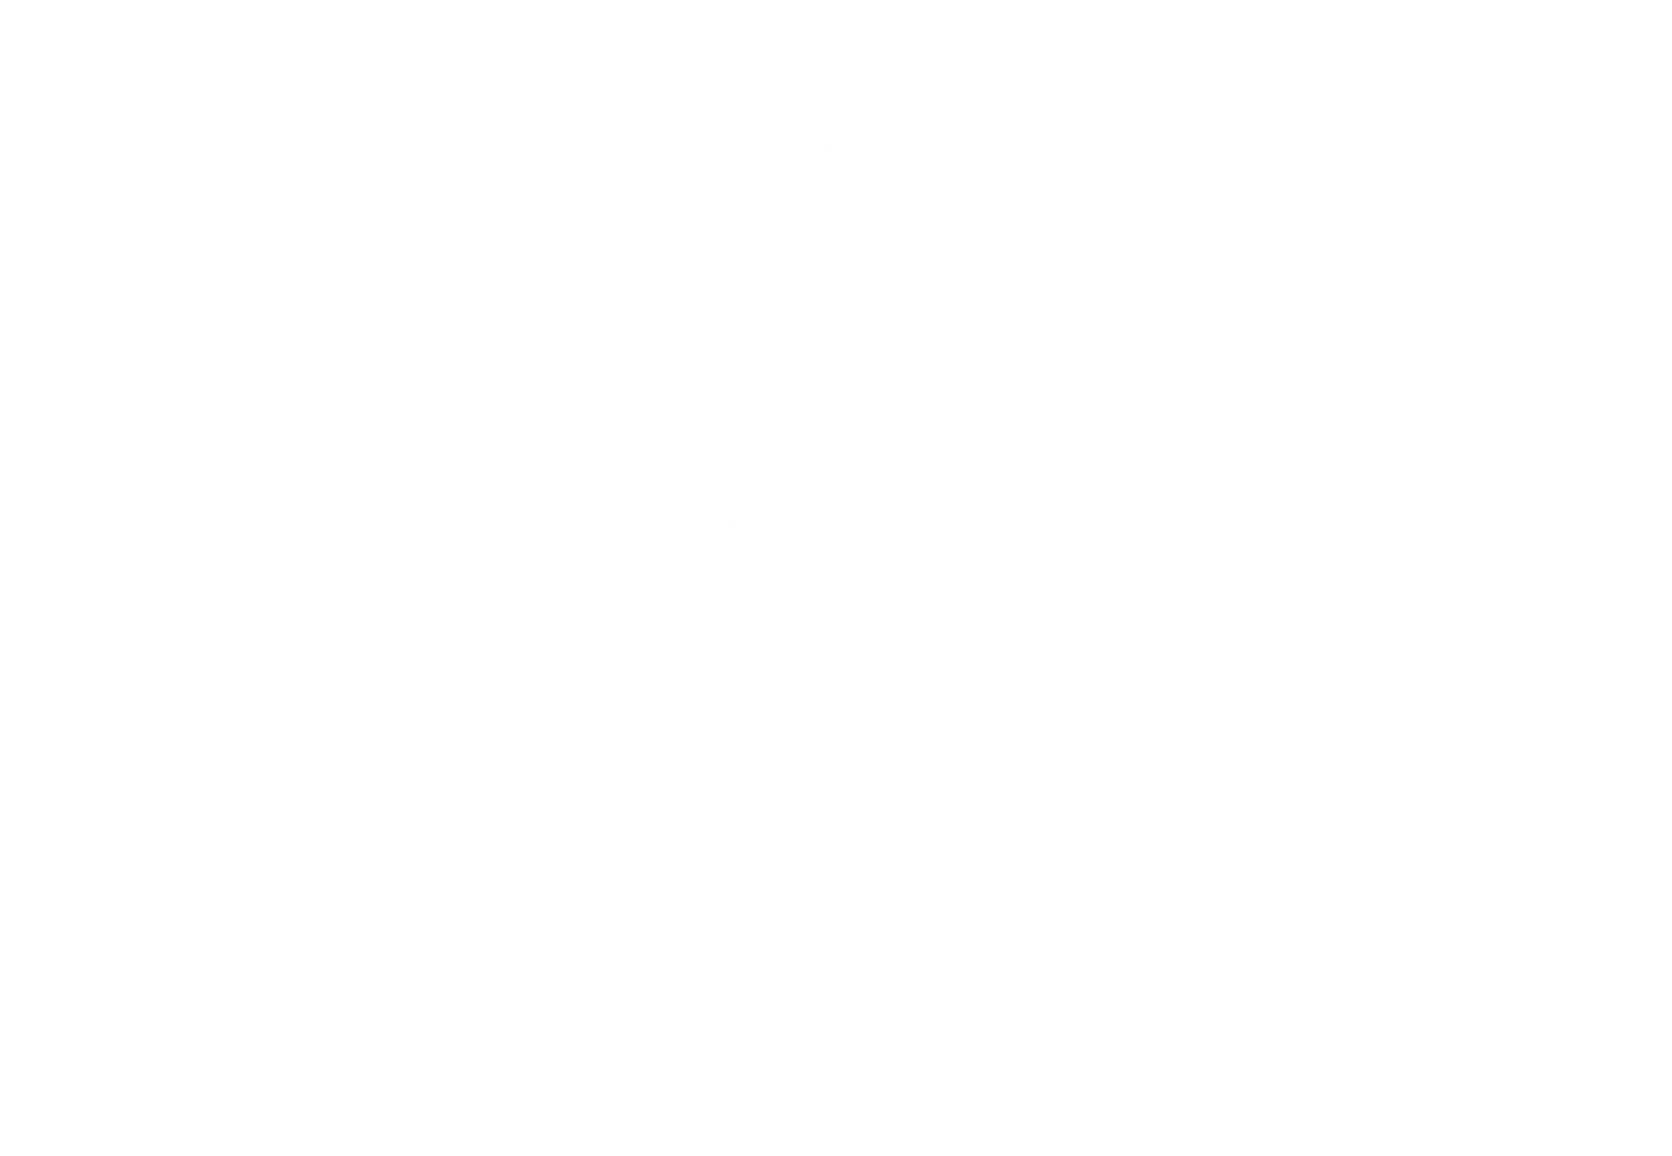 Fraternity of Girth